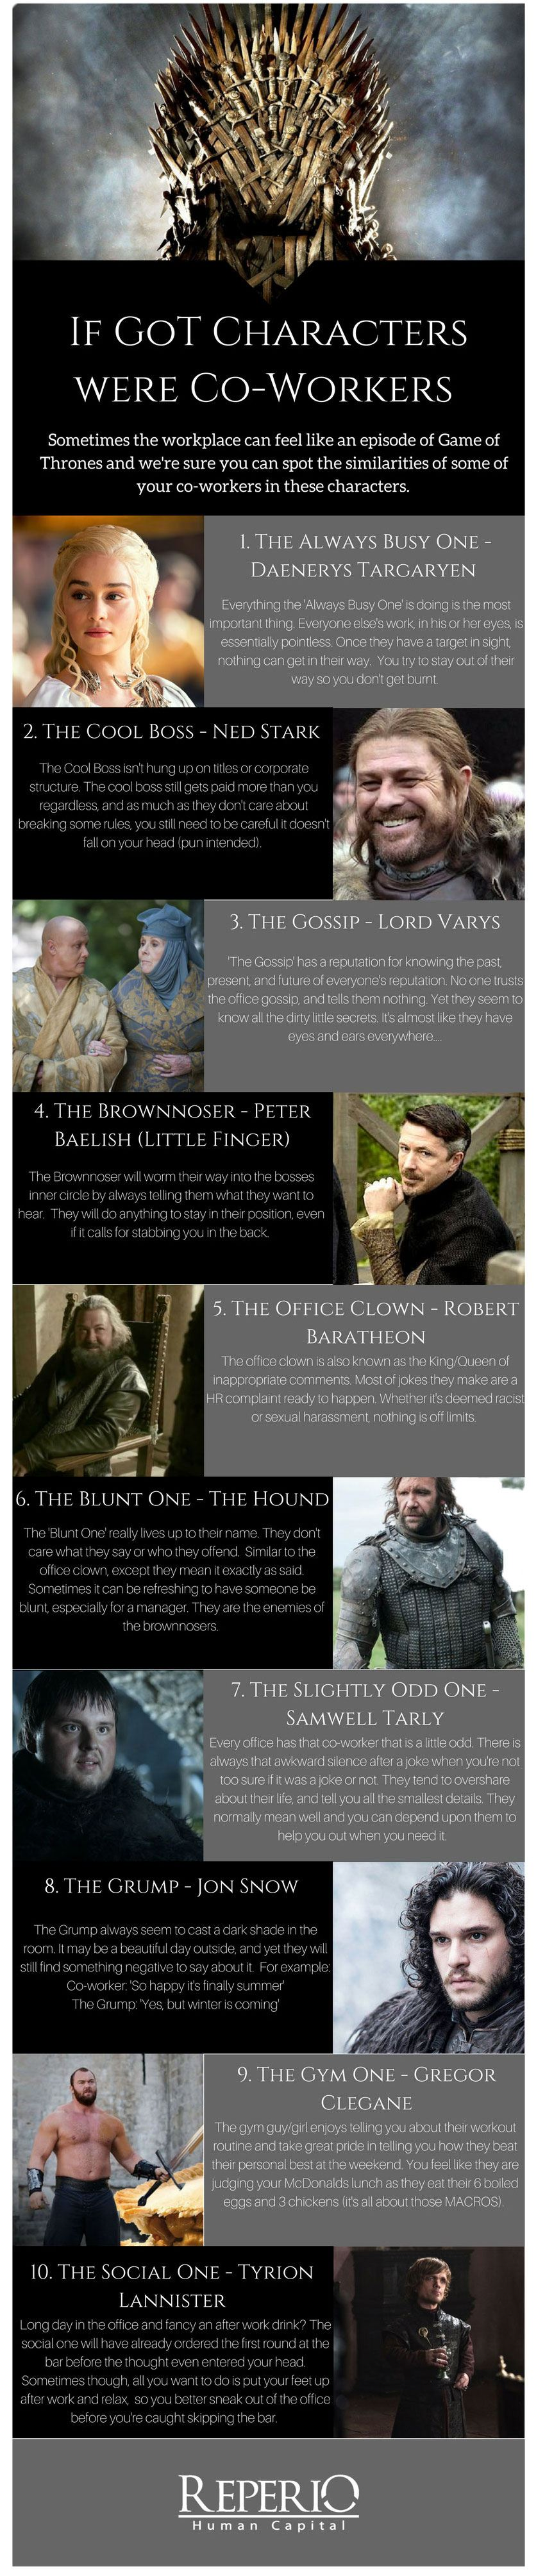 Game of Thrones, in real life? (Click to enlarge) Image: Reperio